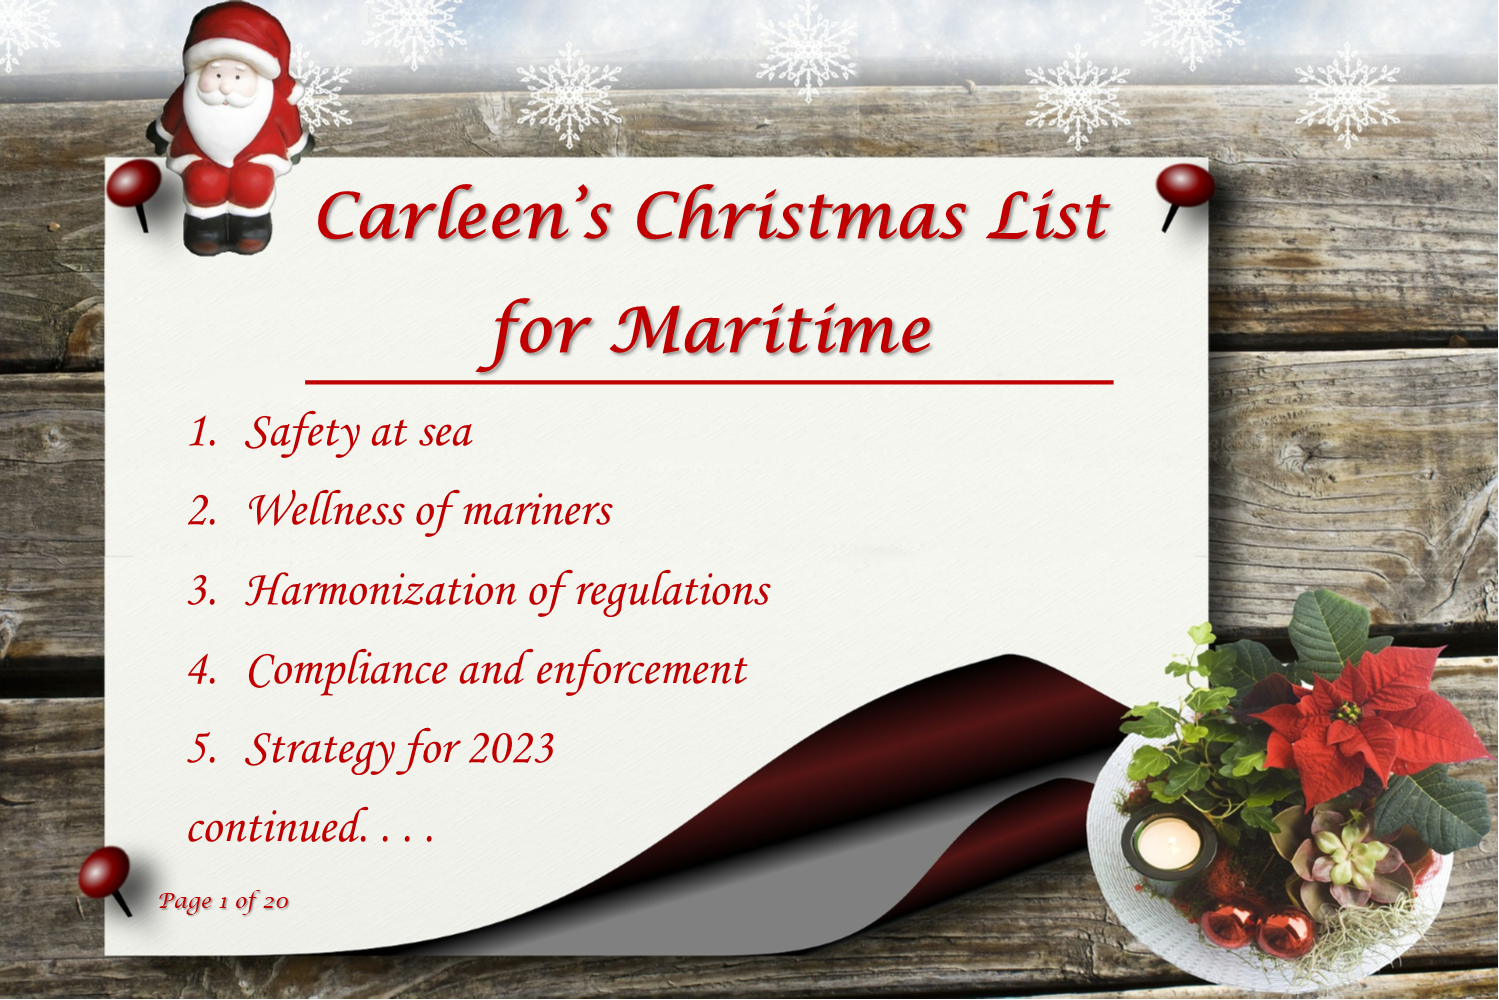 Carleen's Christmas List For Maritime